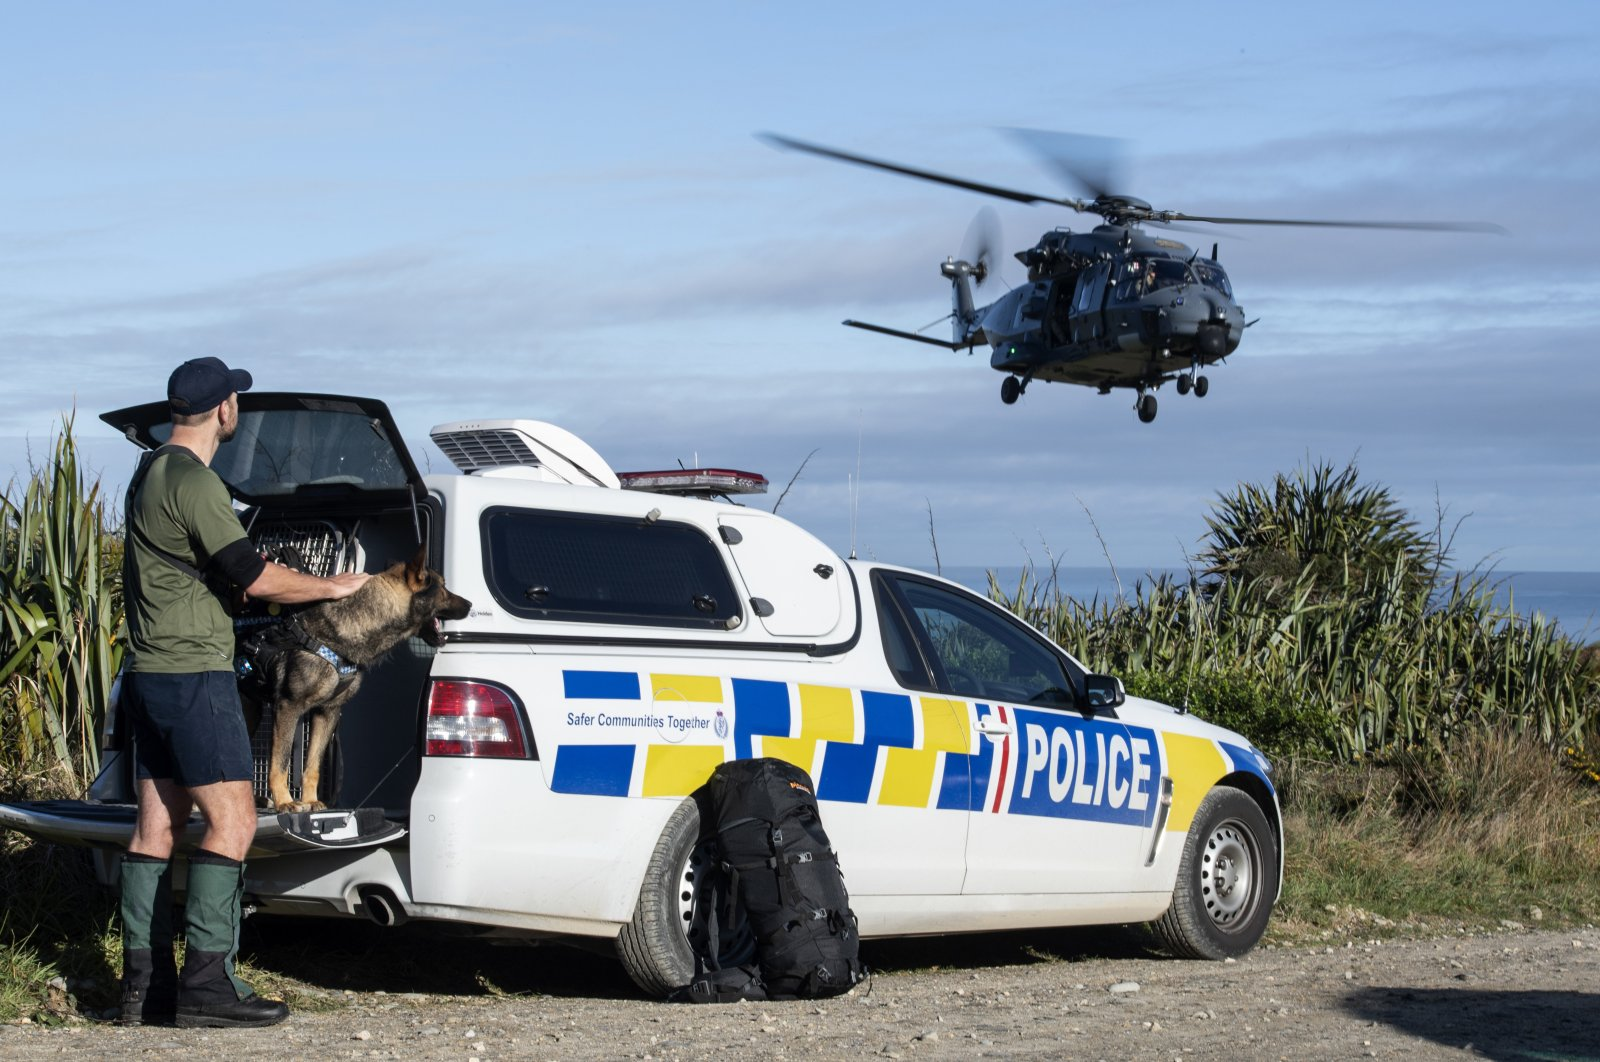 In this photo provided by the New Zealand Defence Force, a police officer watches as a helicopter takes off during a rescue operation to find two missing trampers in the Kahurangi National Park in the South Island of New Zealand, Wednesday, May 27, 2020. (CPL Naomi James/New Zealand Defence Force via AP)